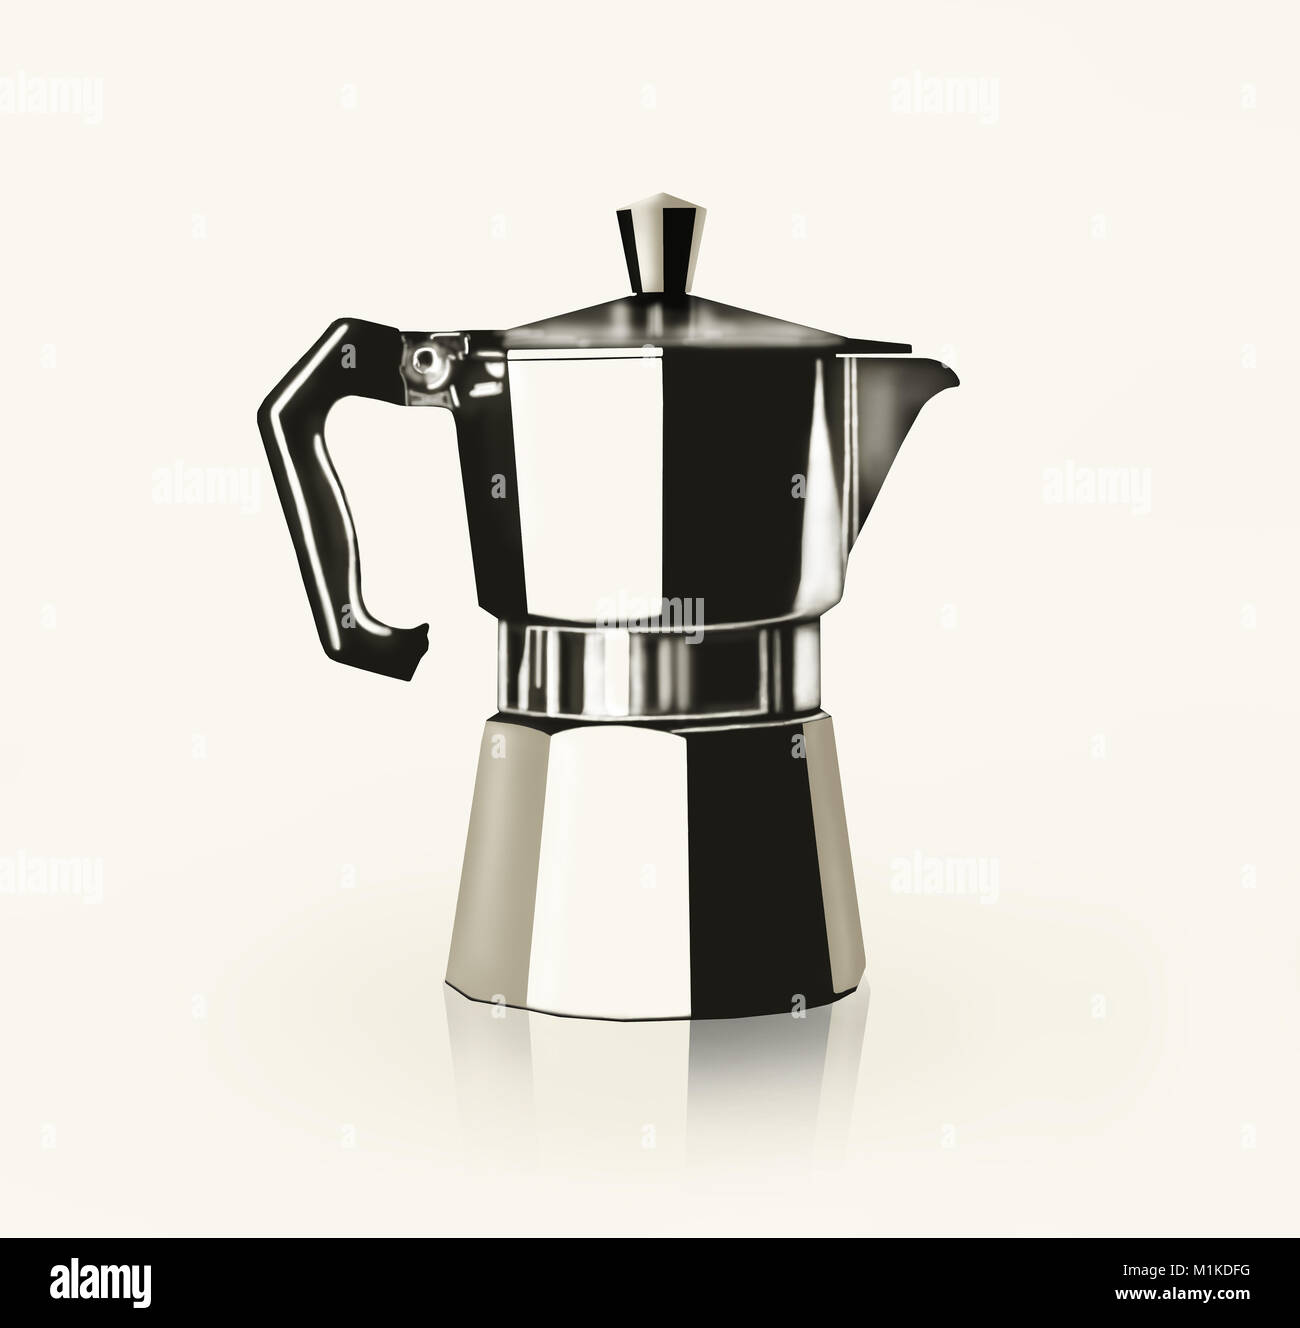 Artistic Image Representing A Drawing Of An Italian Coffee Pot